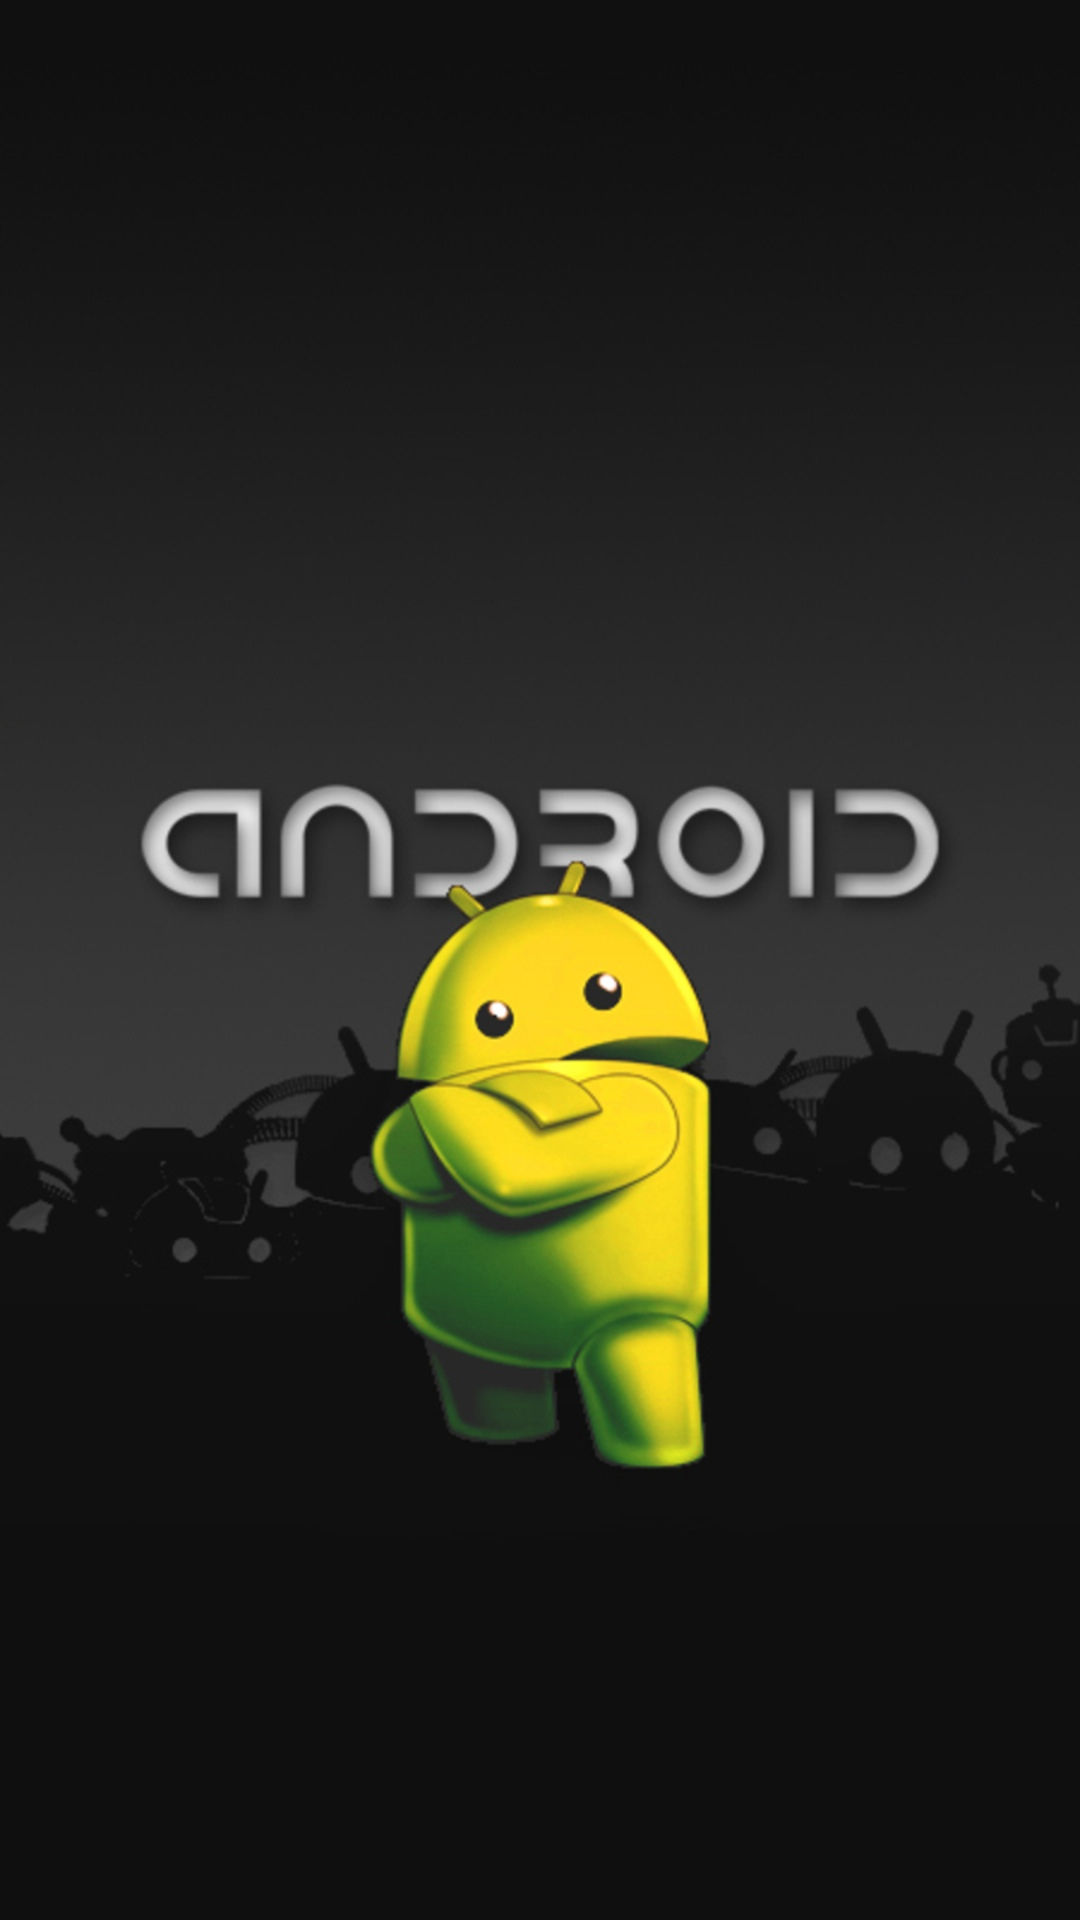 Android Central Logo Android Wallpaper download 1080x1920